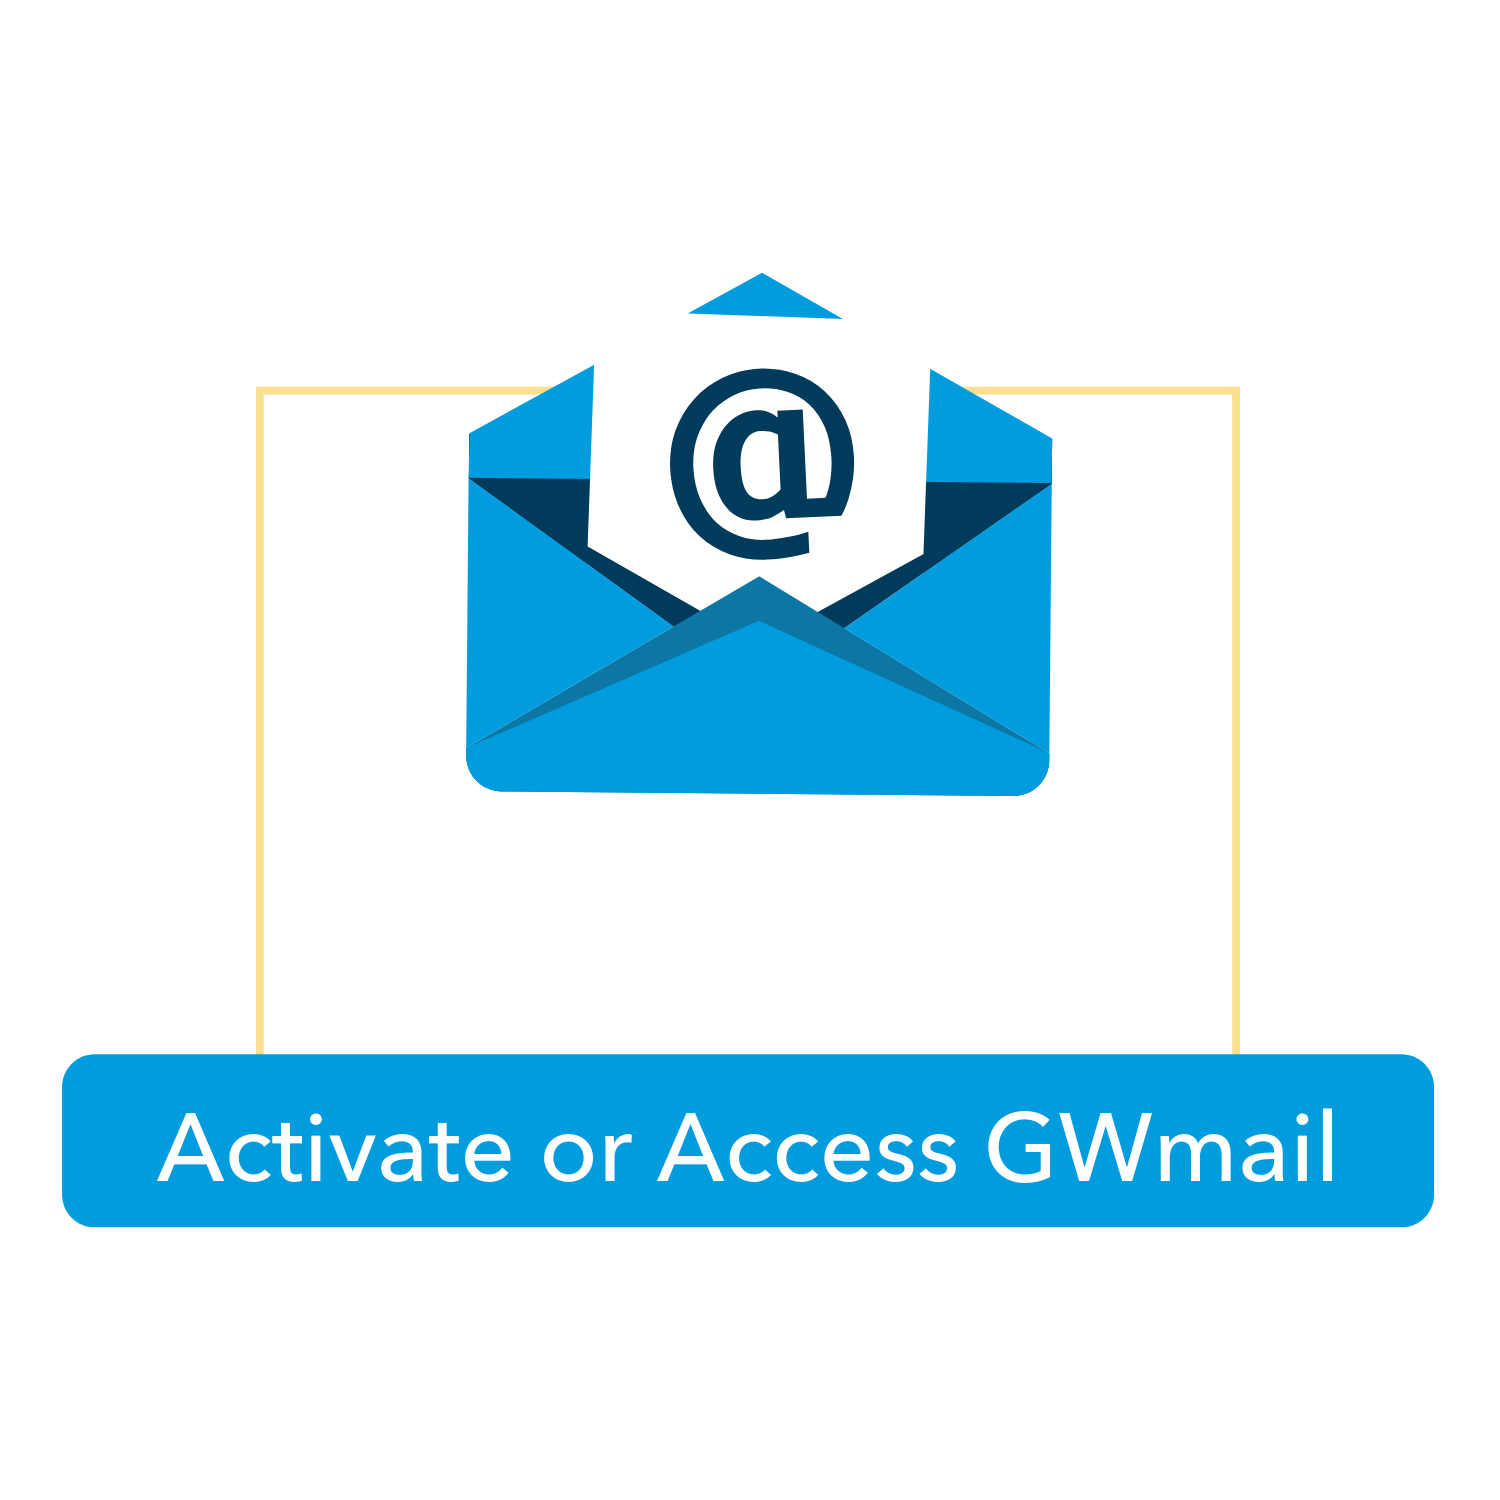 Activate/Access GW Mail